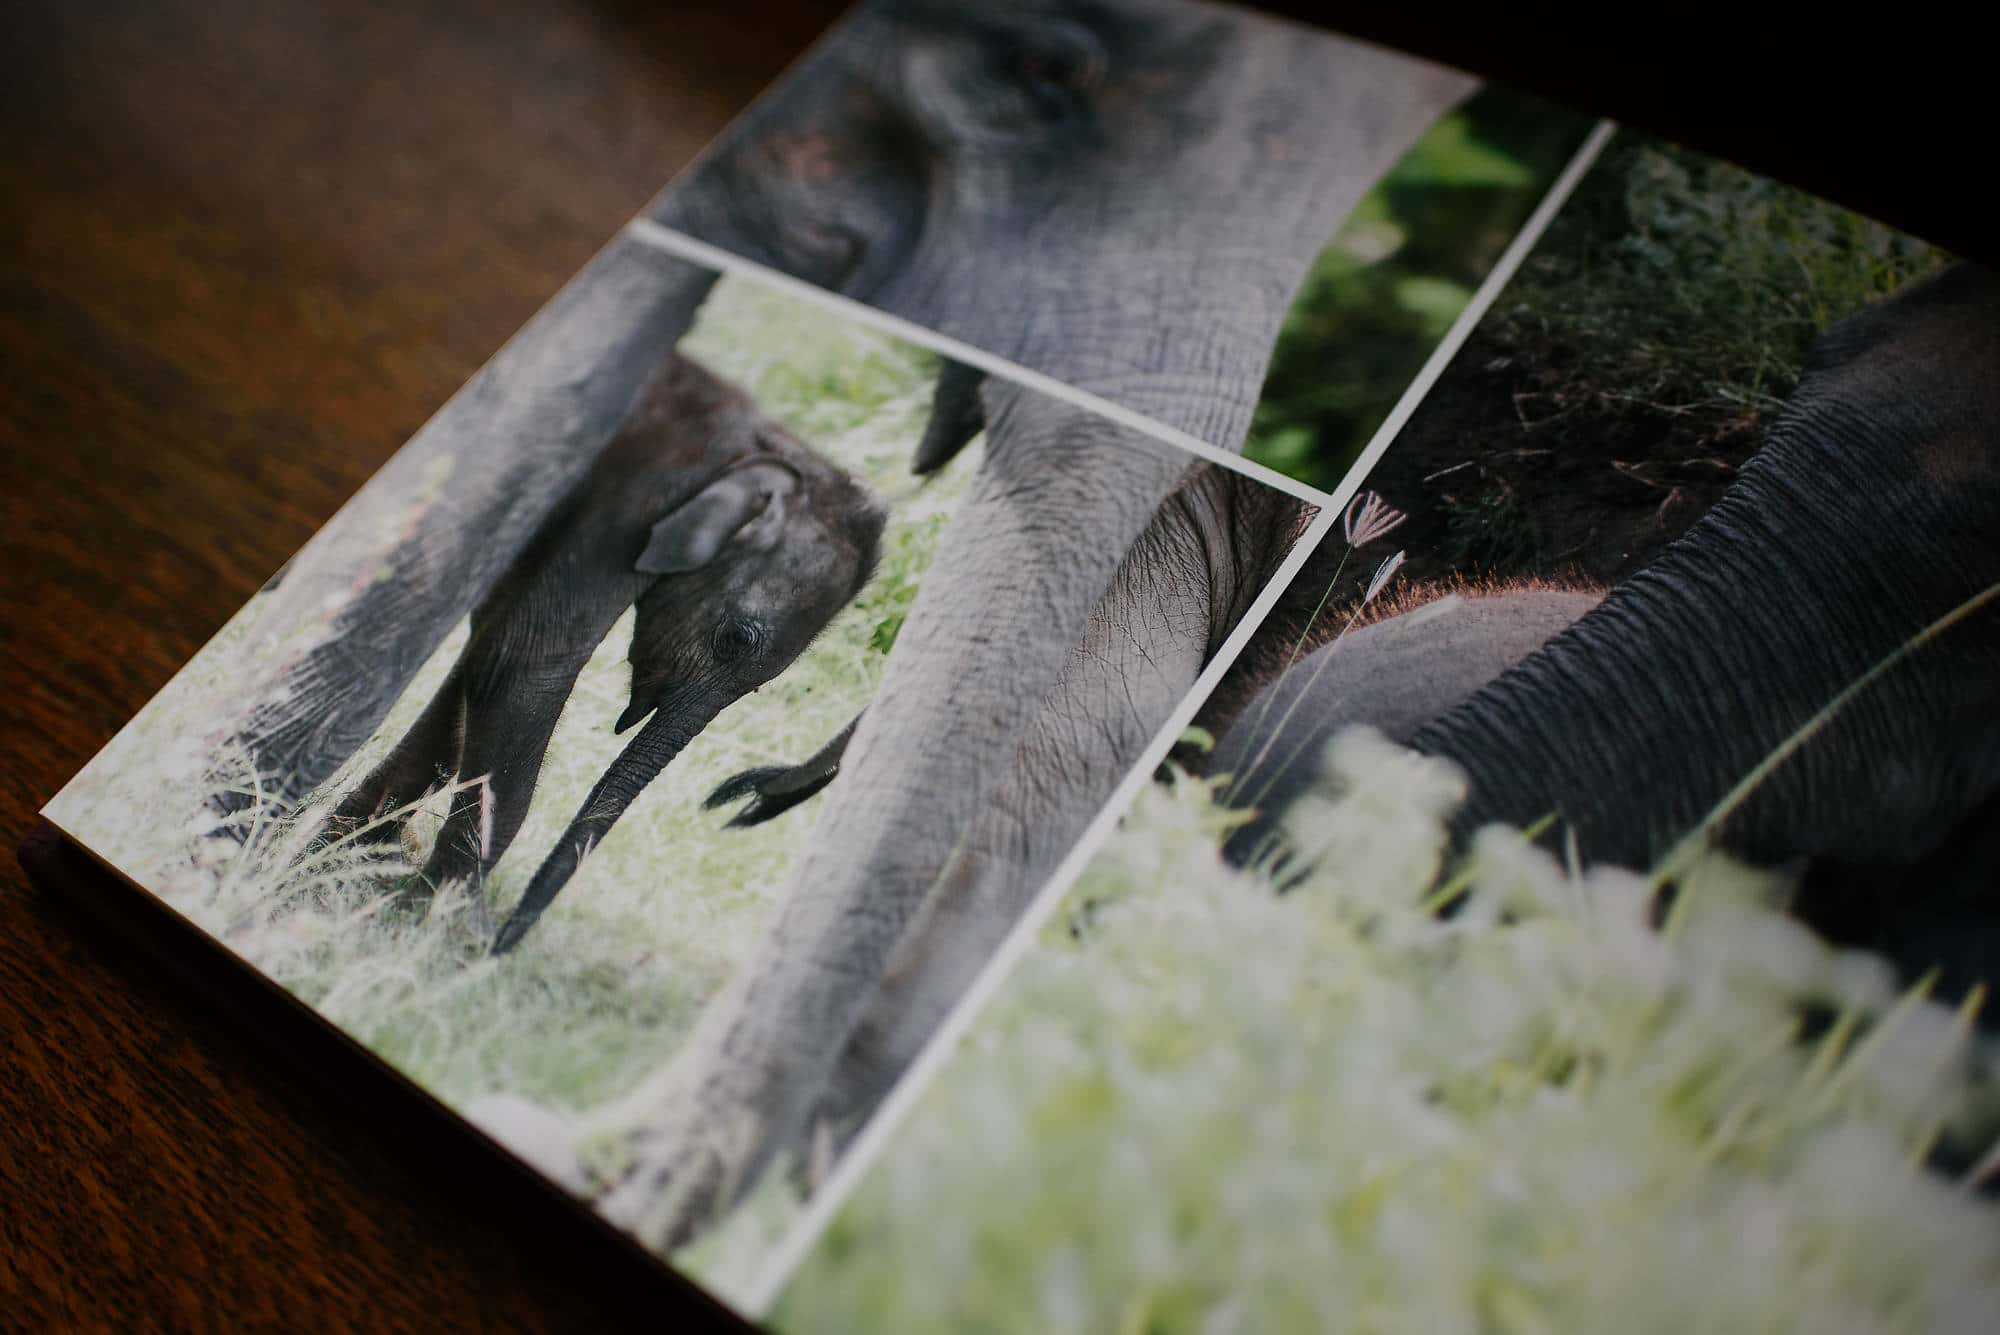 Printed images and albums 6